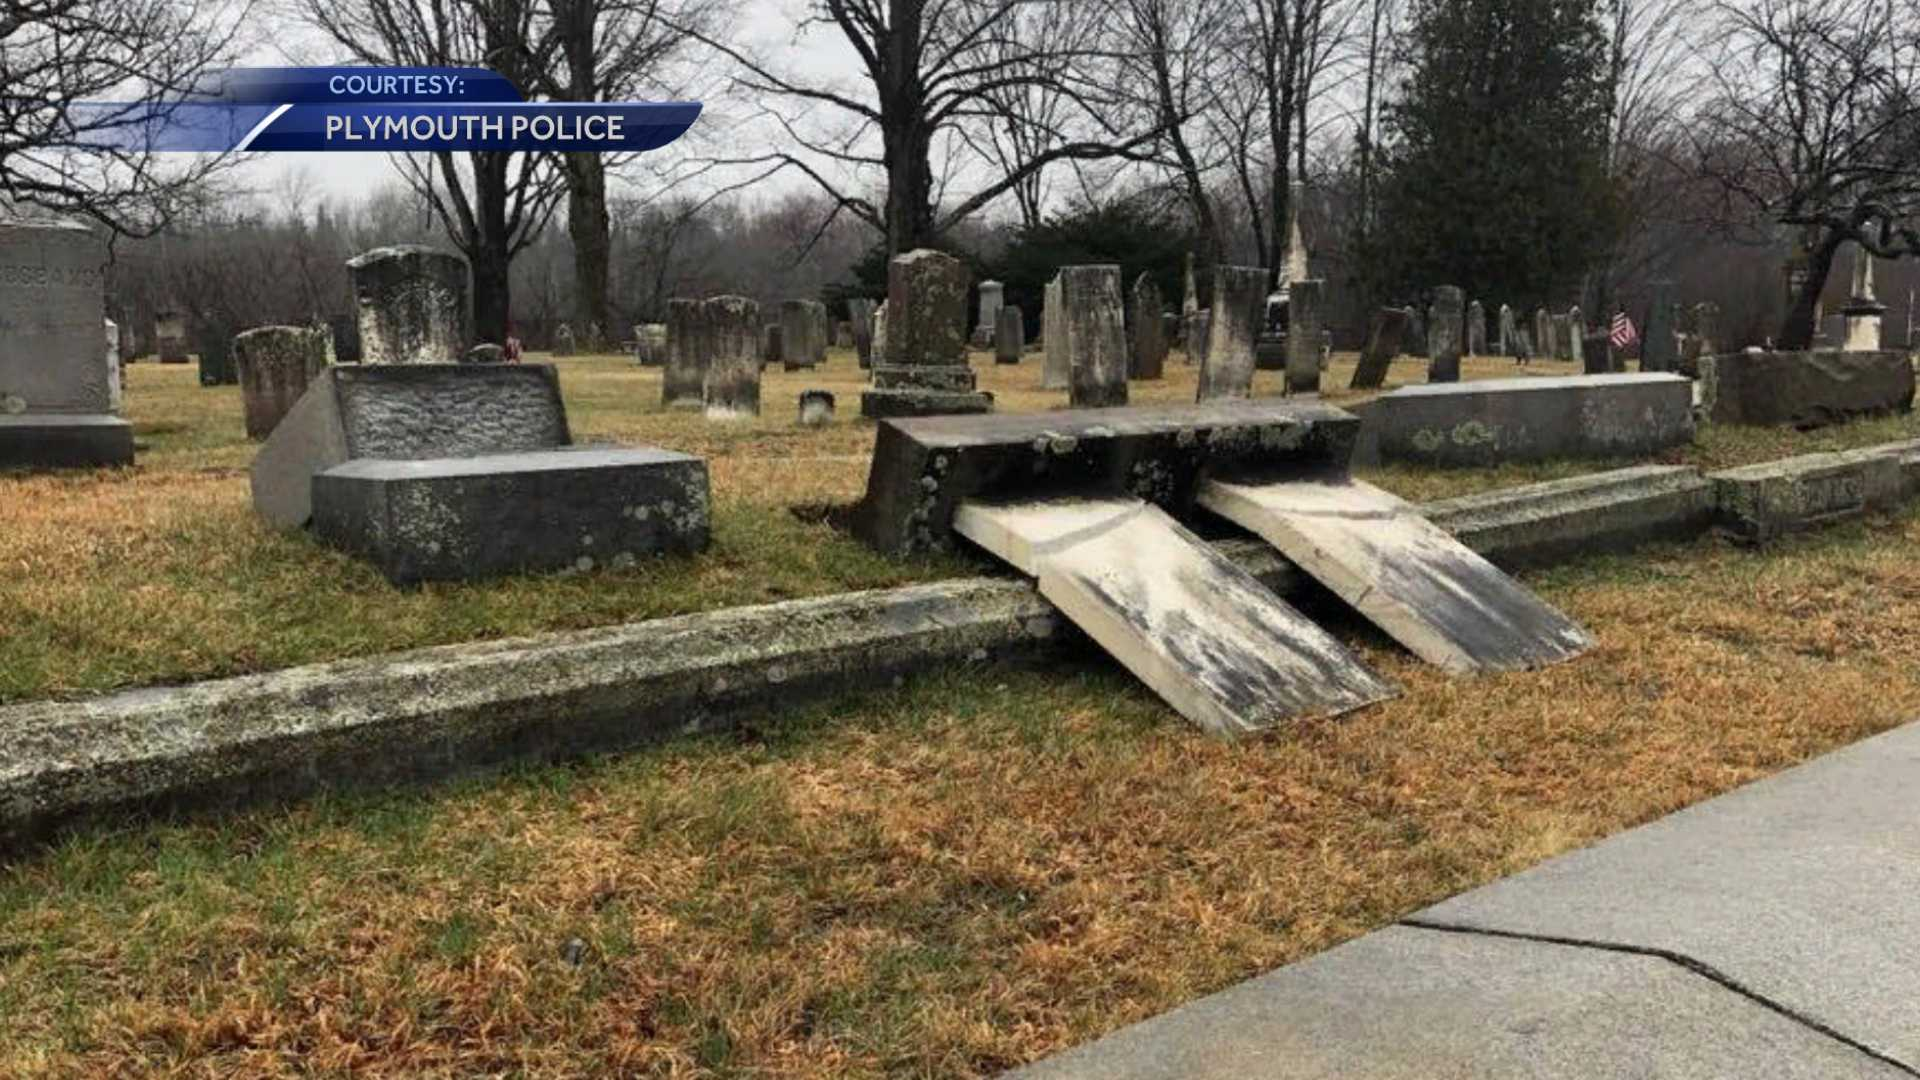 Plymouth police investigating cemetery vandalism